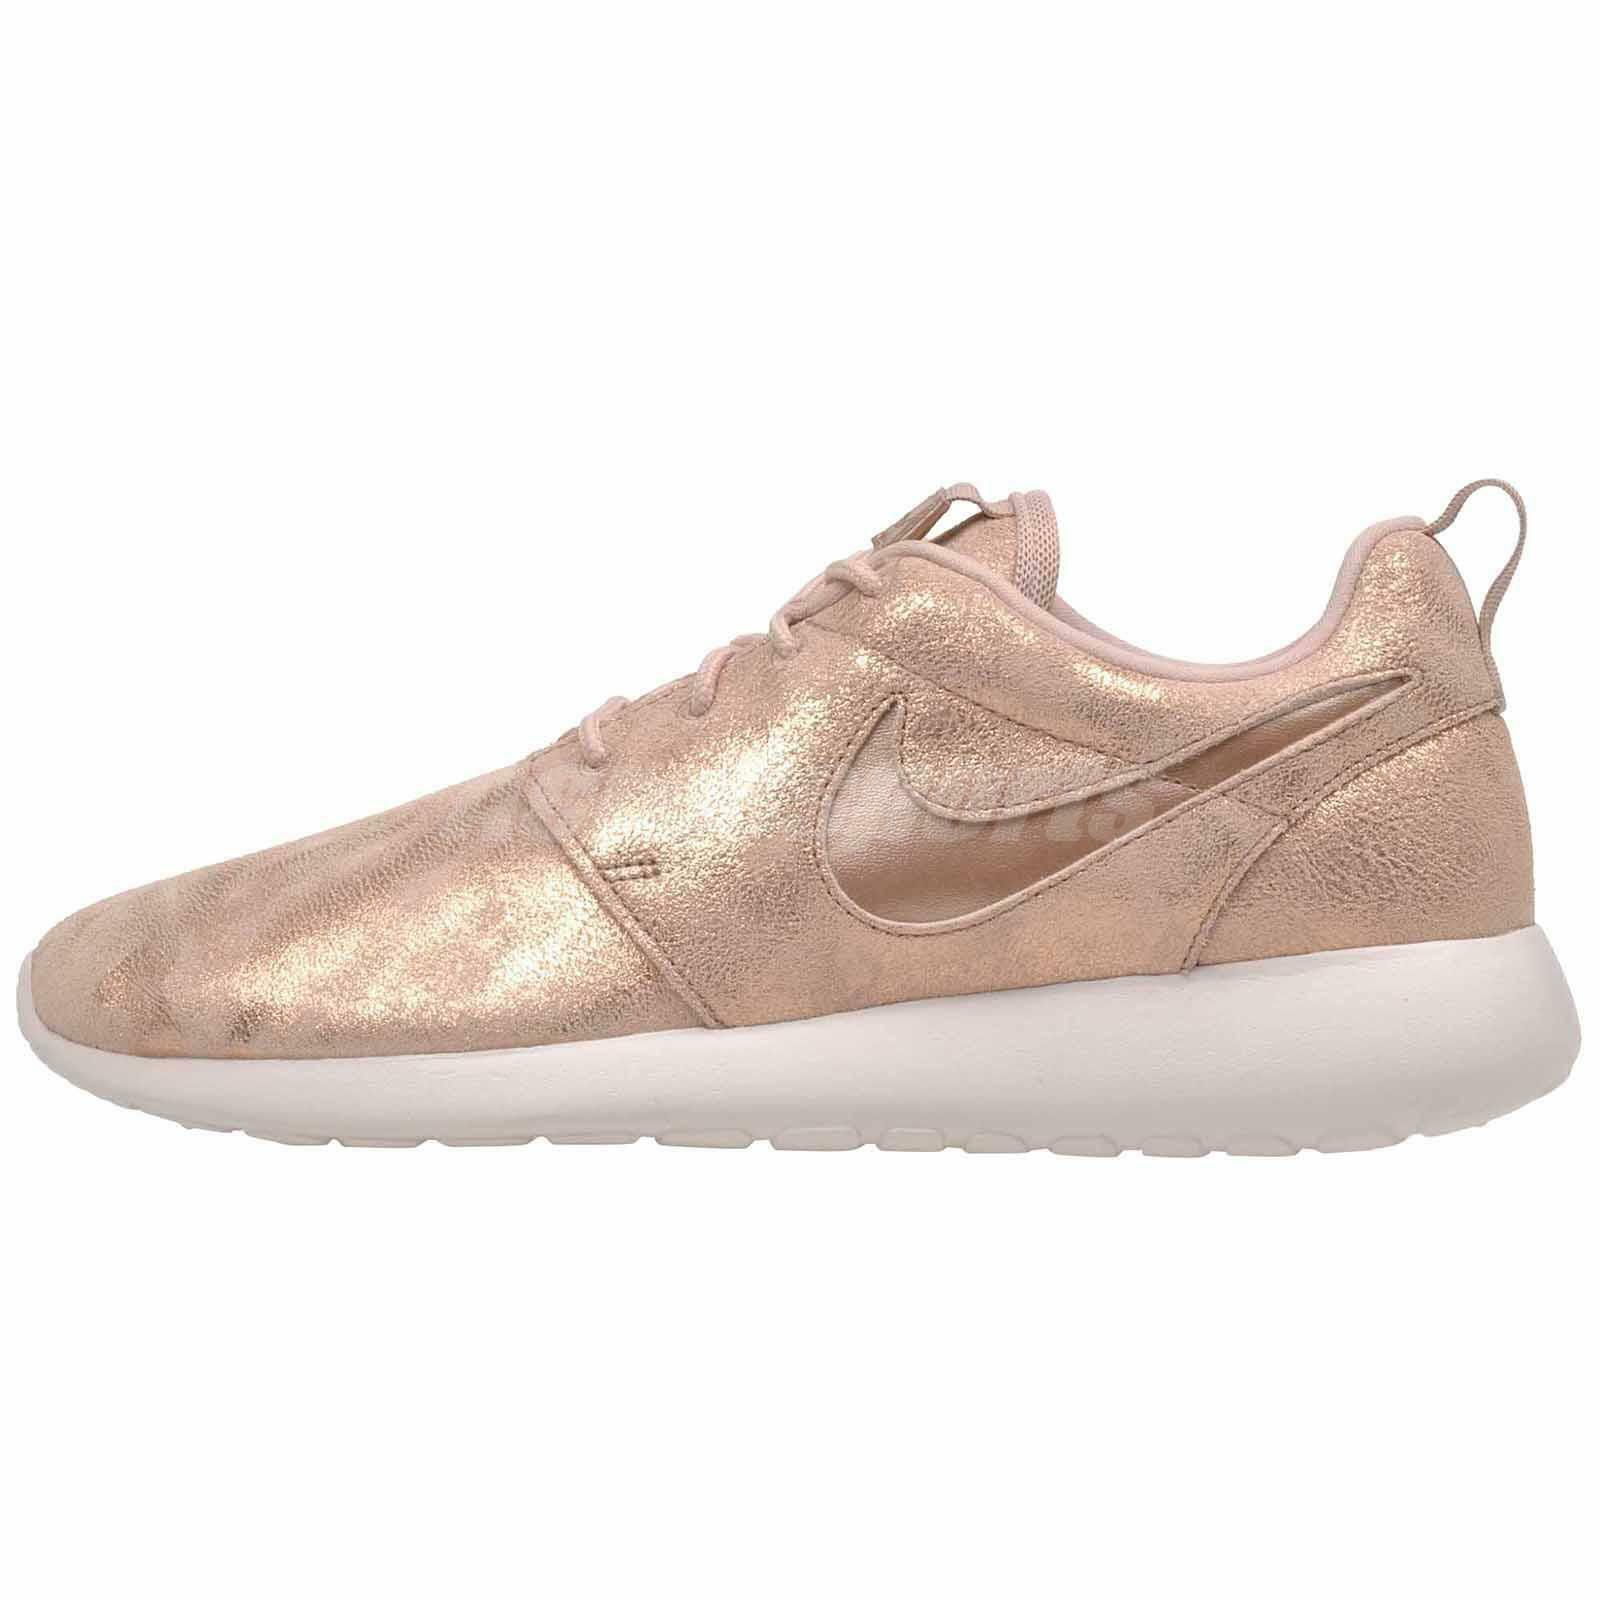 Nike Wmns Roshe One PRM Running Womens Shoes Metallic Bronze 833928-900